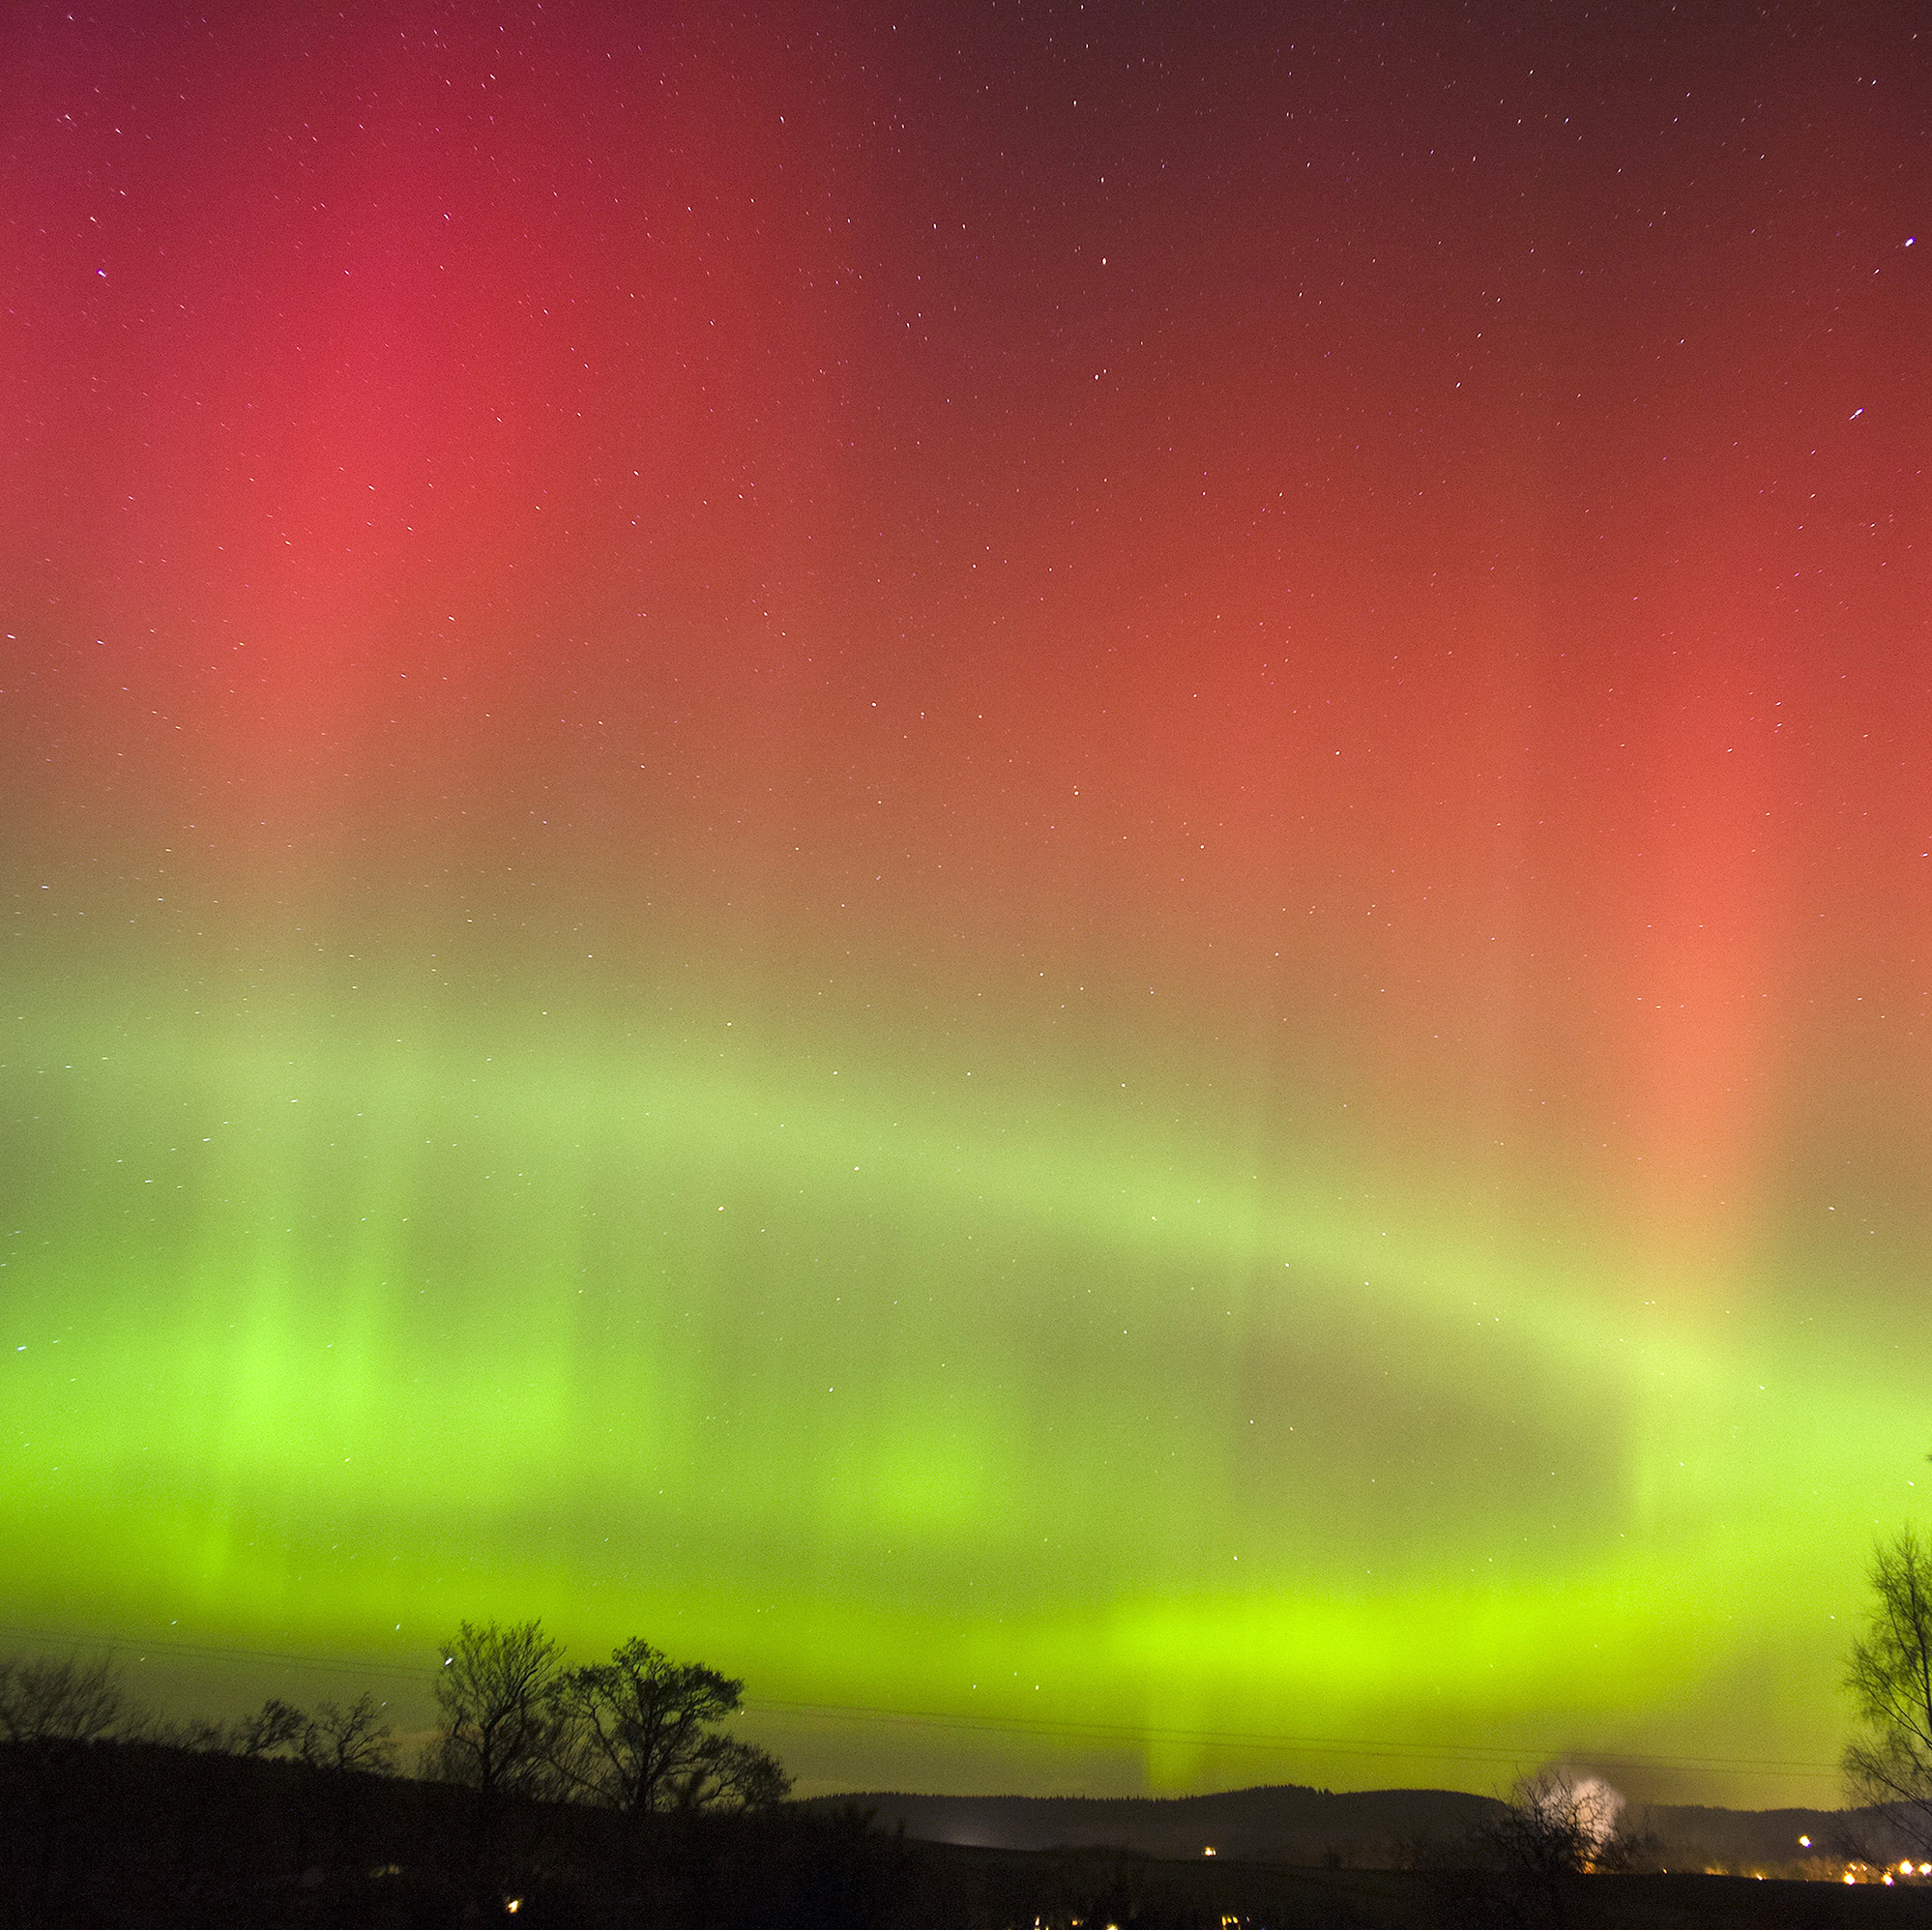 A view of the Northern Lights as seen from Crooktree in Aberdeenshire, Scotland, Thursday. The light show occurs when highly charged electrons from solar wind interact with Earth's atmosphere.